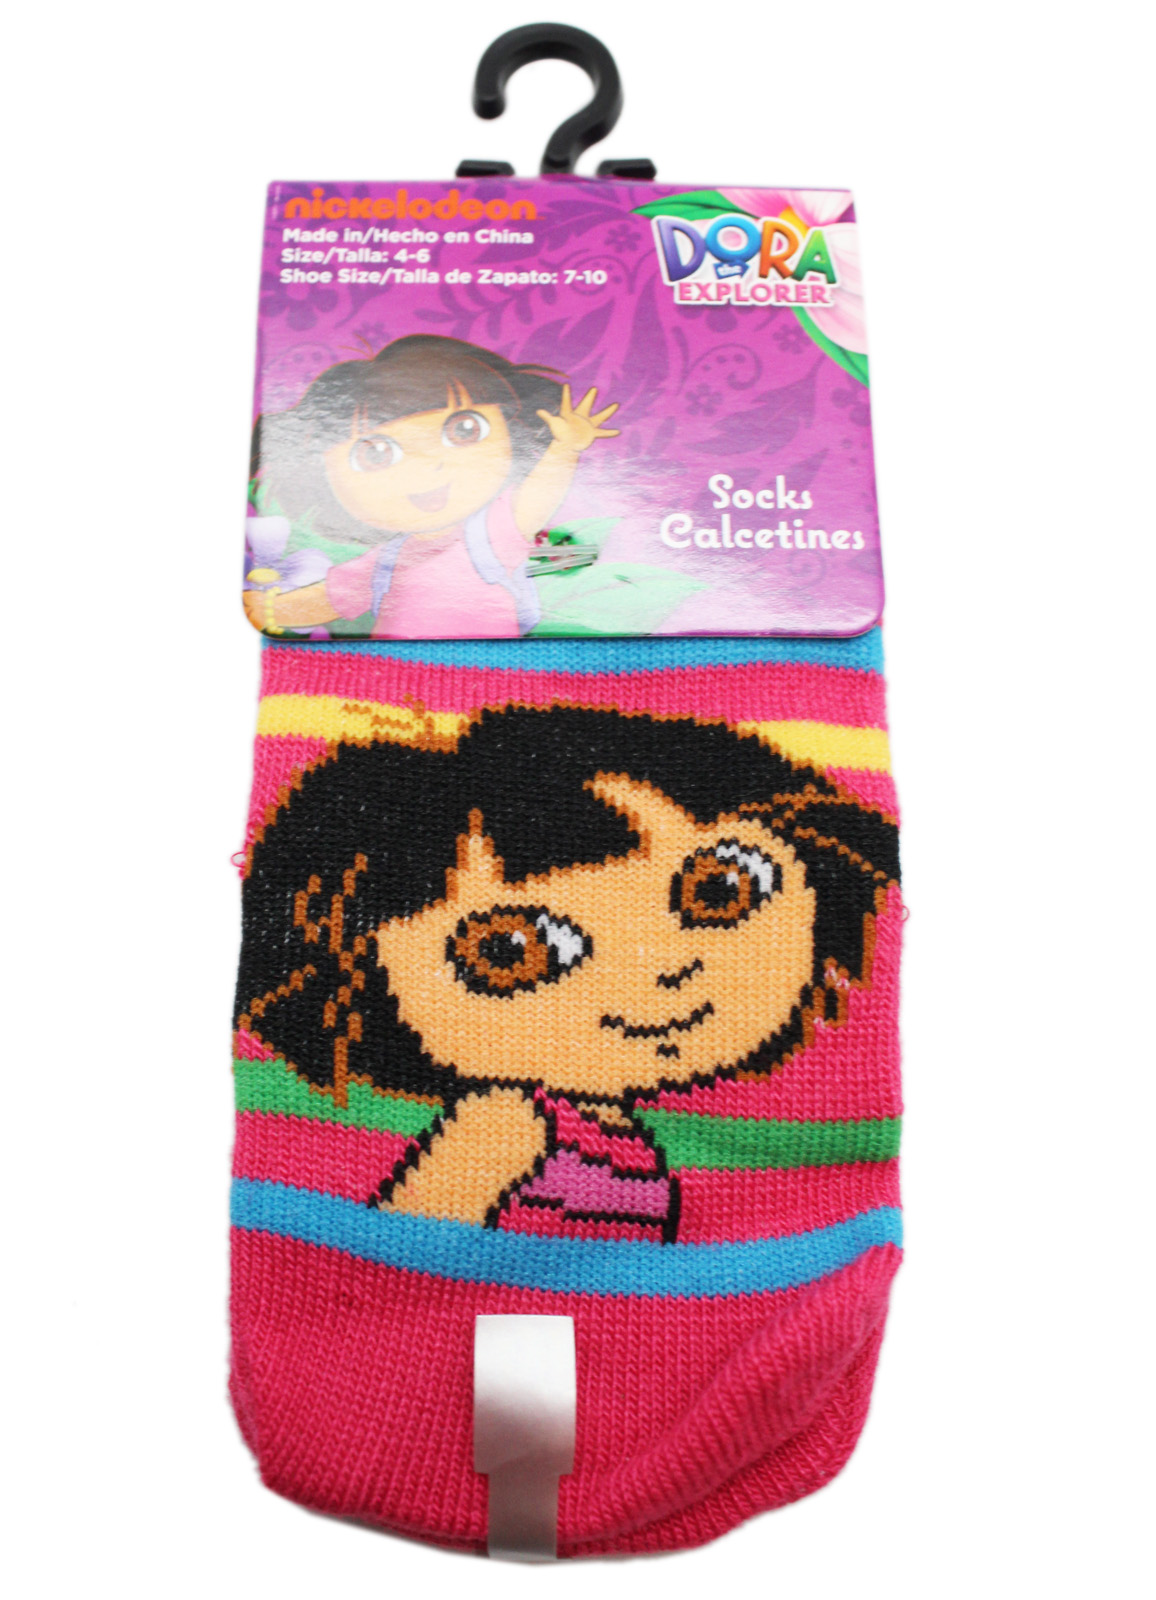 Dora the Explorer Striped Hot Pink Colored Toddler Socks (2 Pairs, Size 4-6)